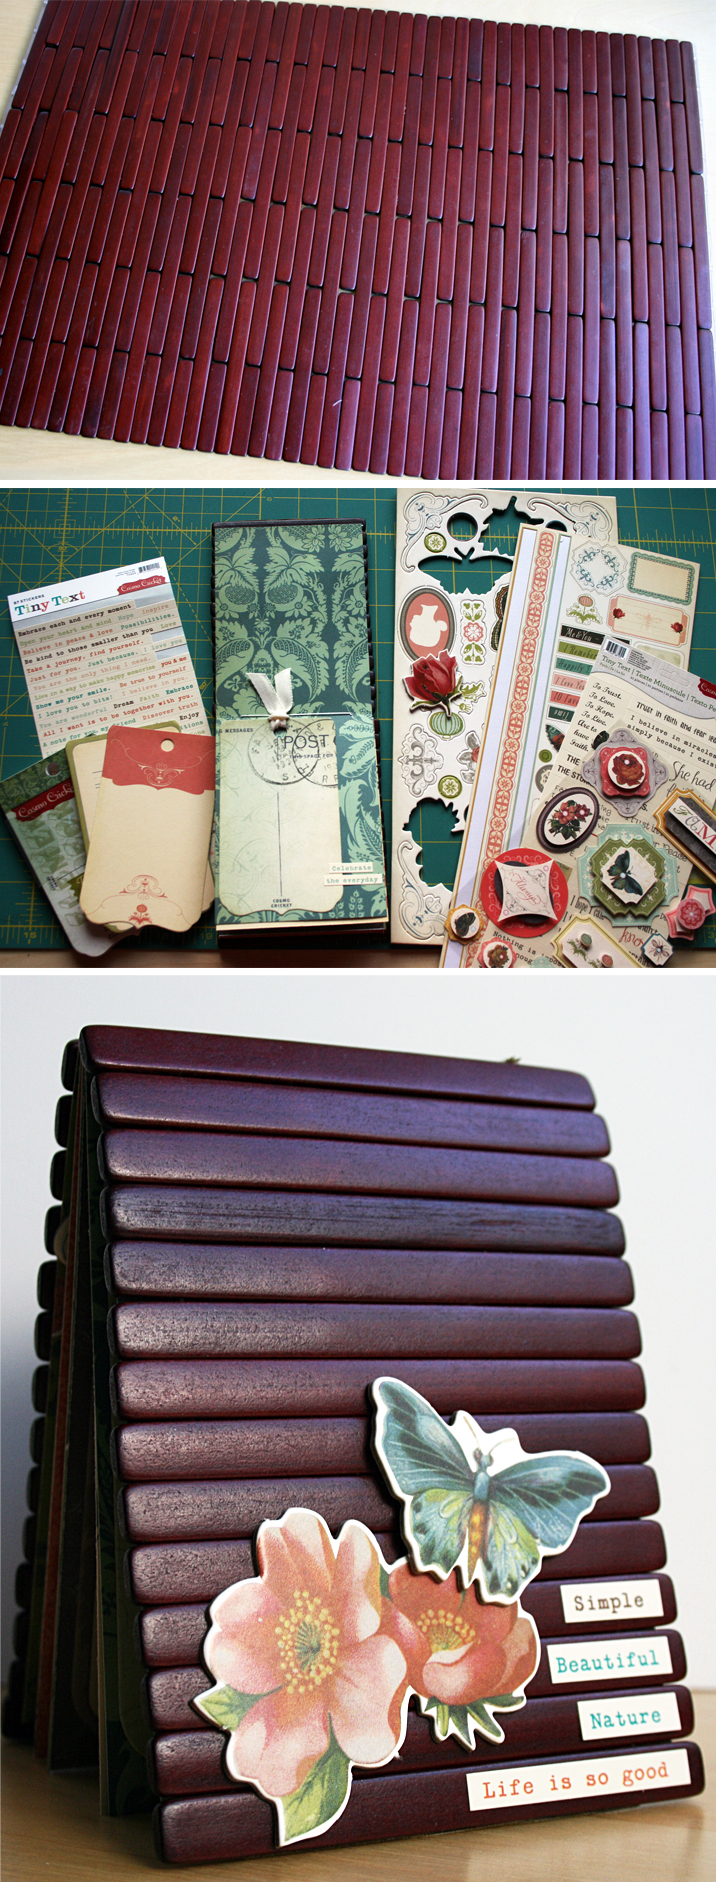 Making a wood covered book DIY